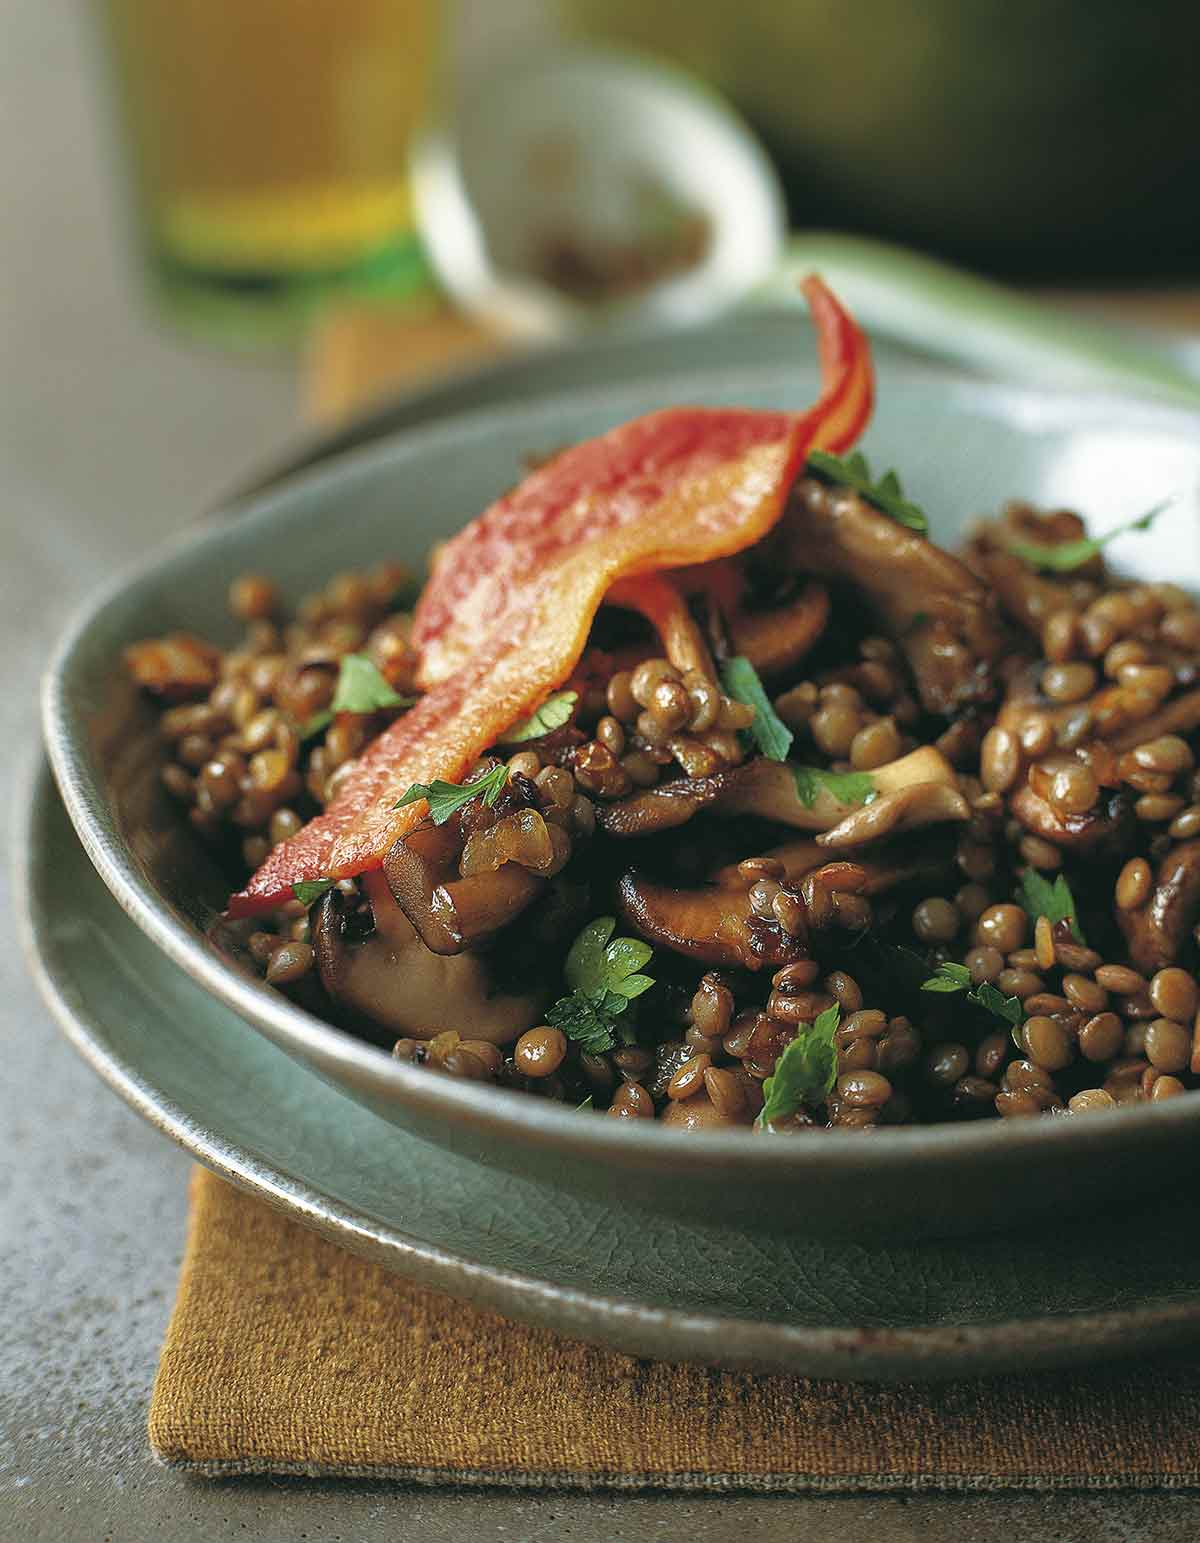 A green bowl filled with sautéed bacon, mushrooms, and lentils with a whole piece of bacon on top.